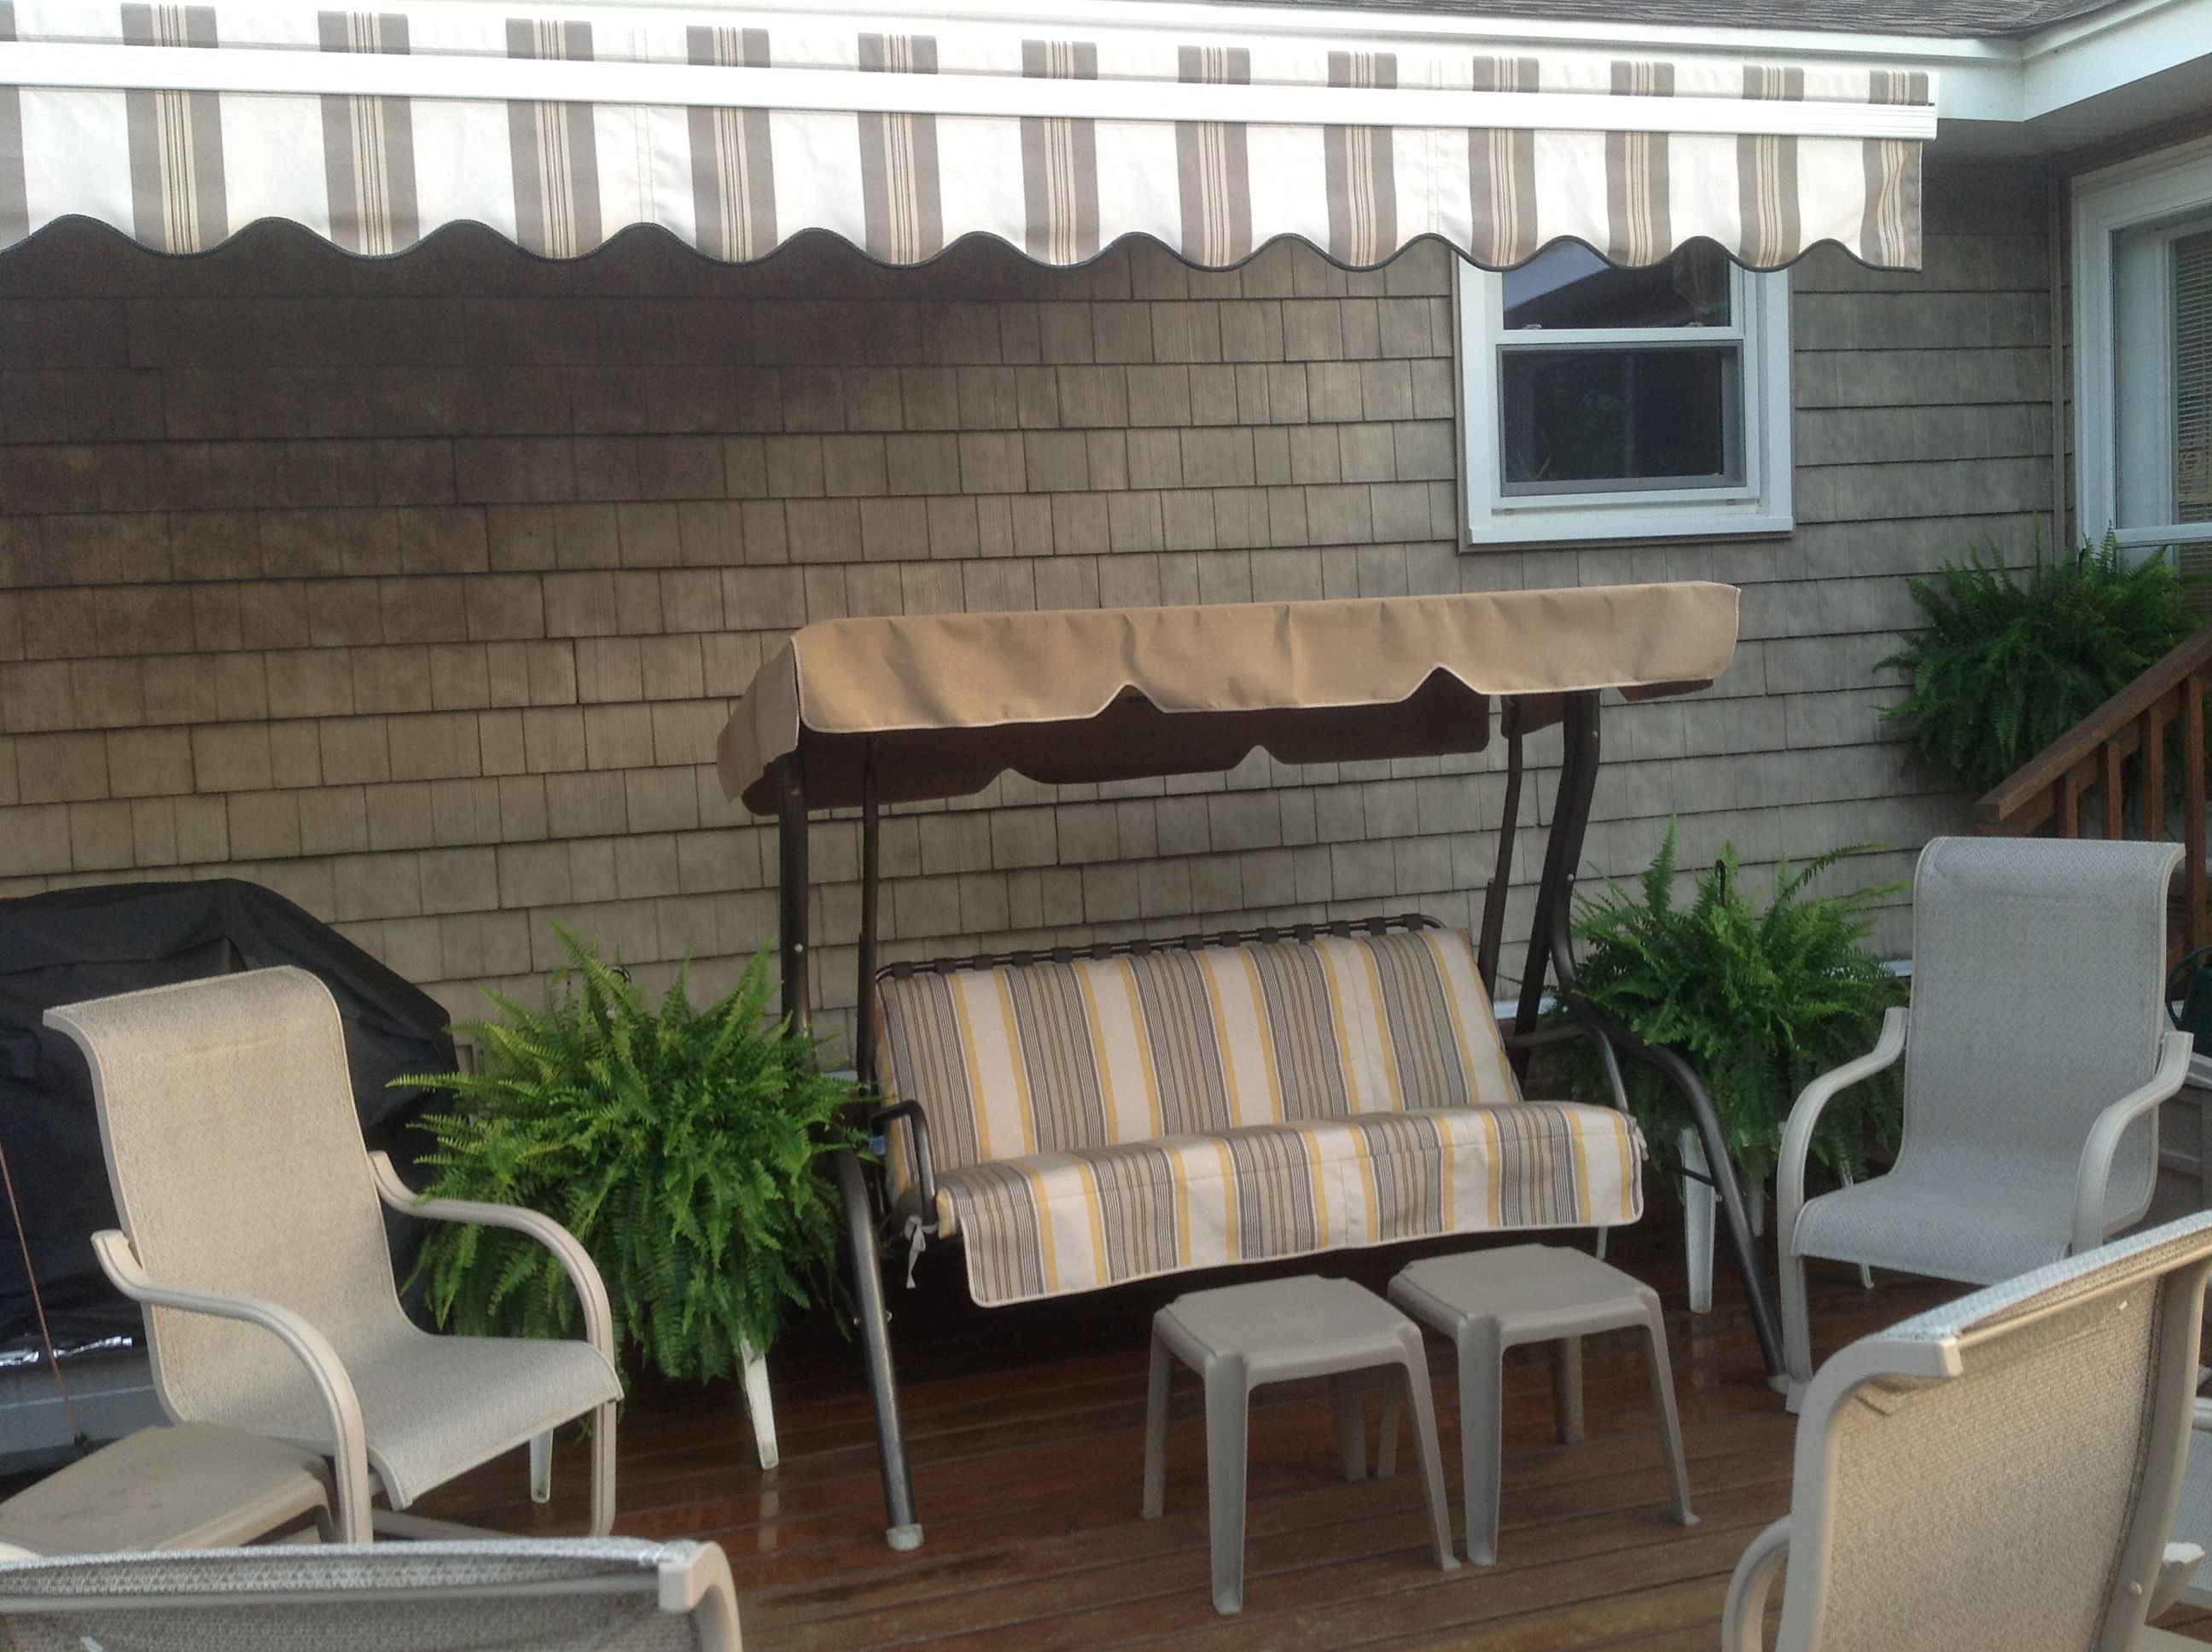 Replacement Canopy And Cushions For Patio Swings Home Design